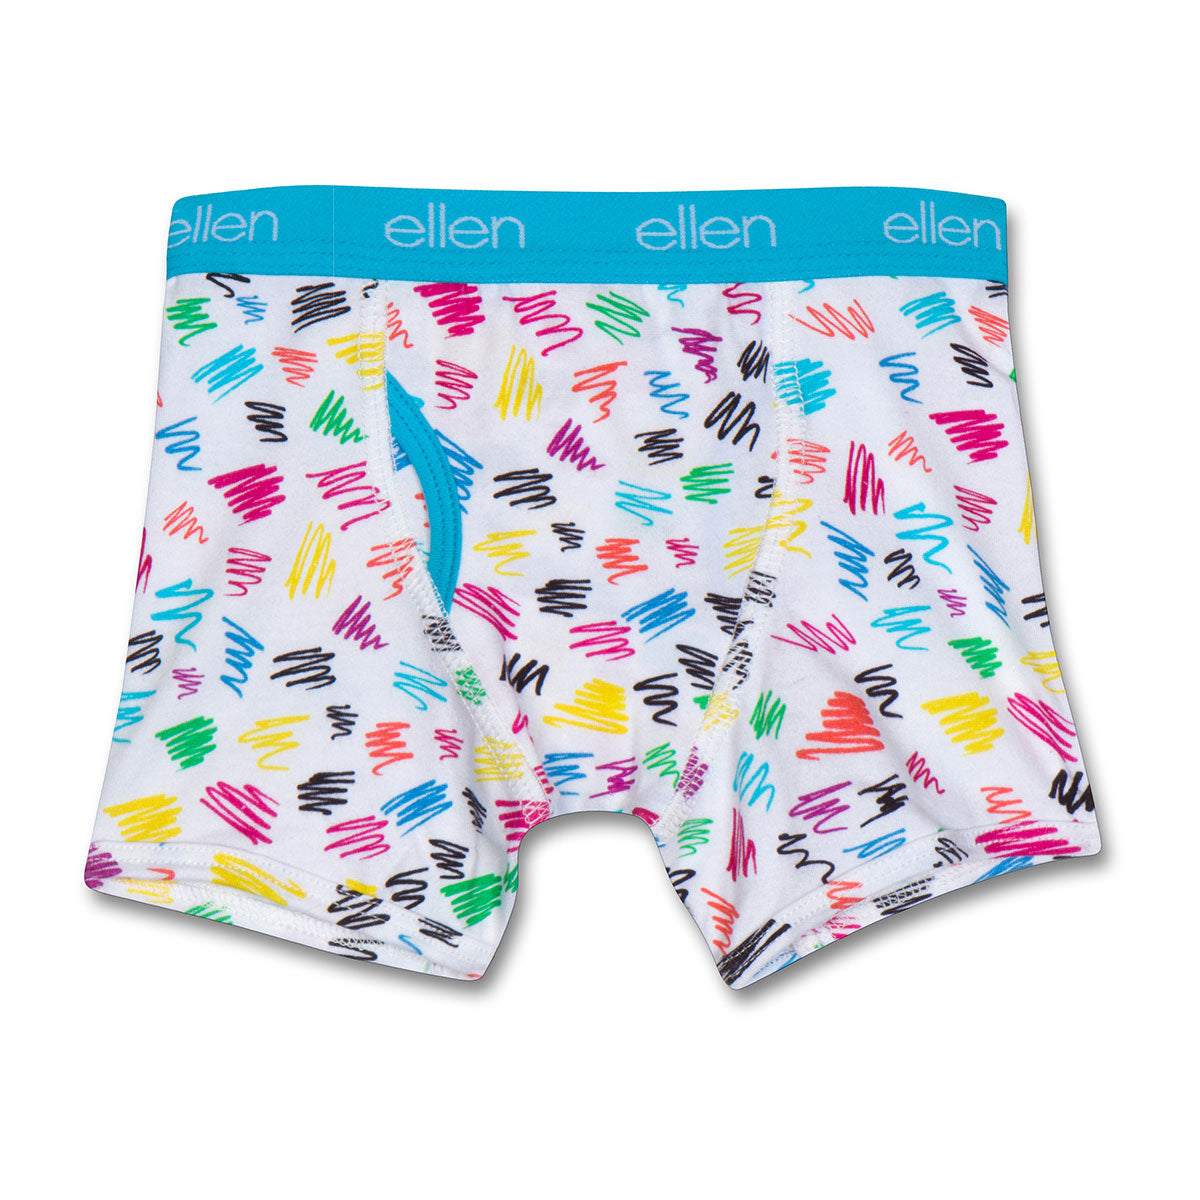 The ellen DeGeneres Show Shop-Kids Boxers - Boys-Blue-Front